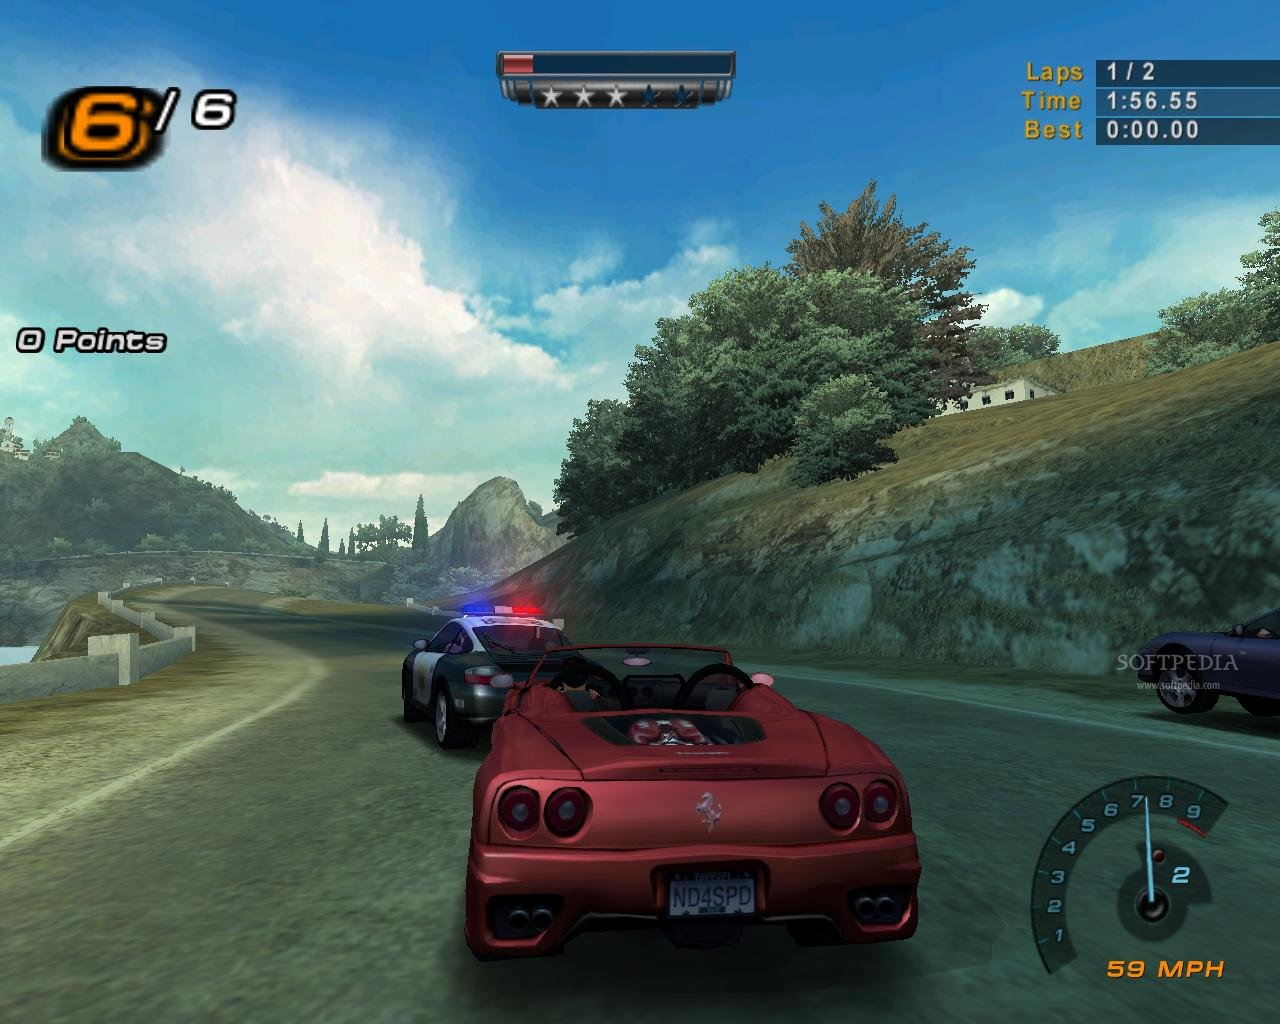 Need for Speed Hot Pursuit (2010 video game) Overview